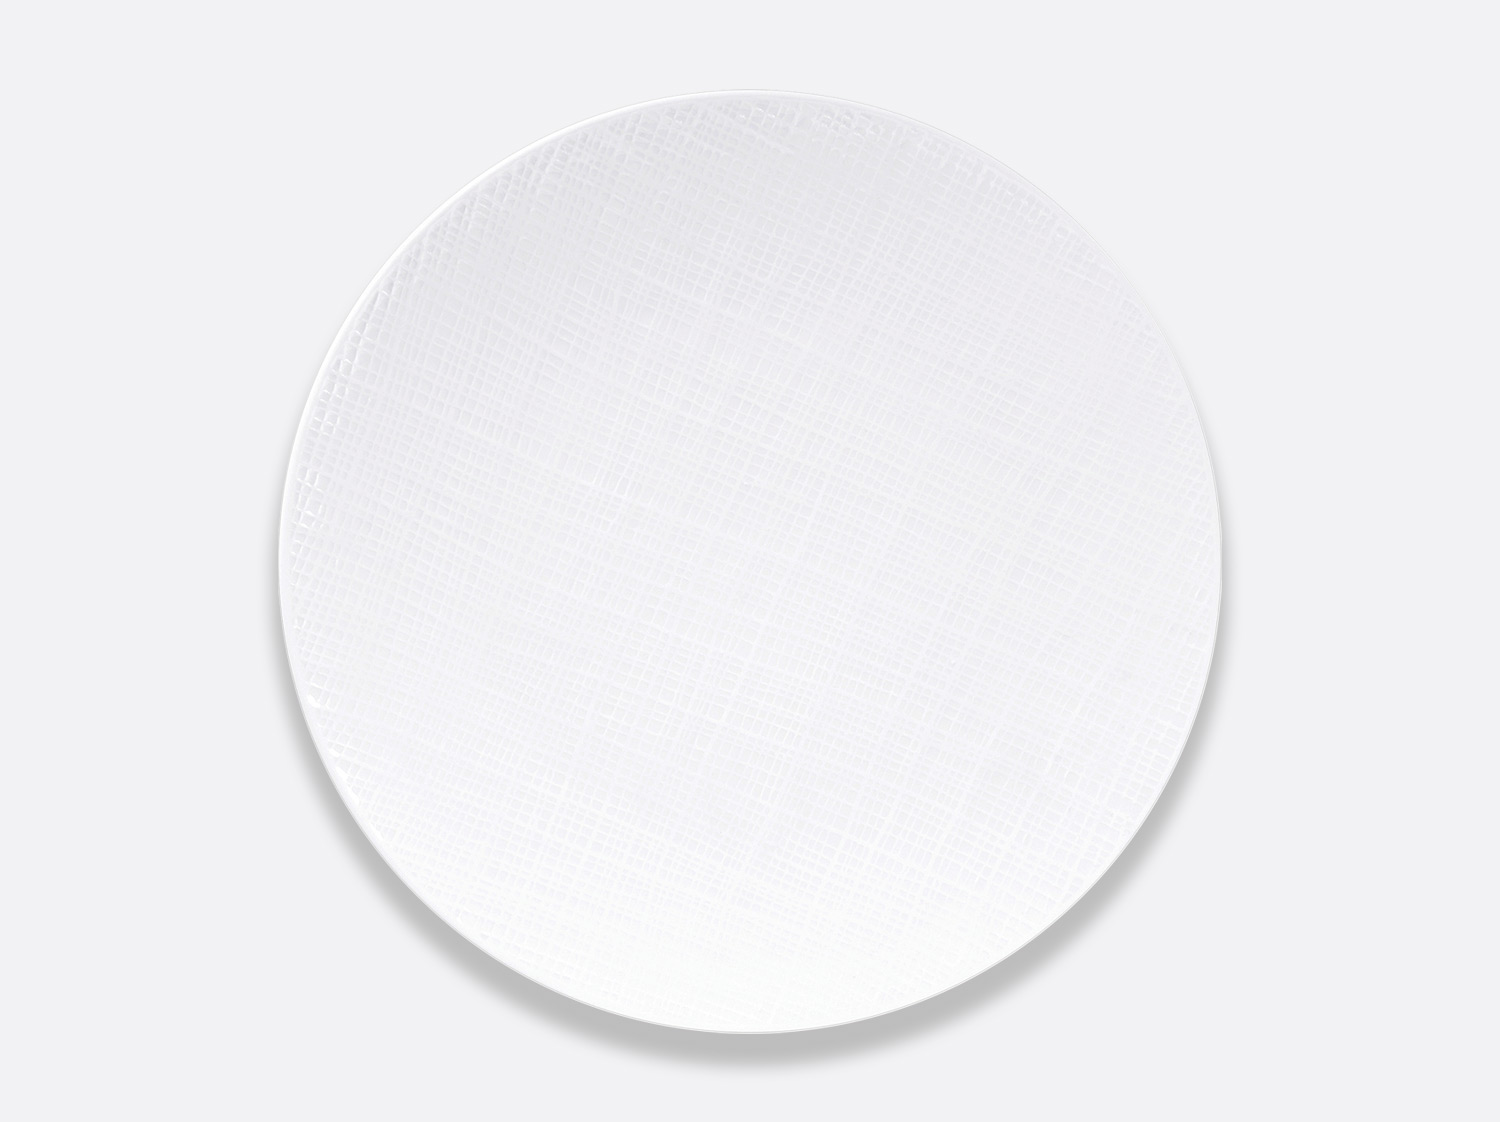 China Coupe plate 26 cm of the collection Organza | Bernardaud